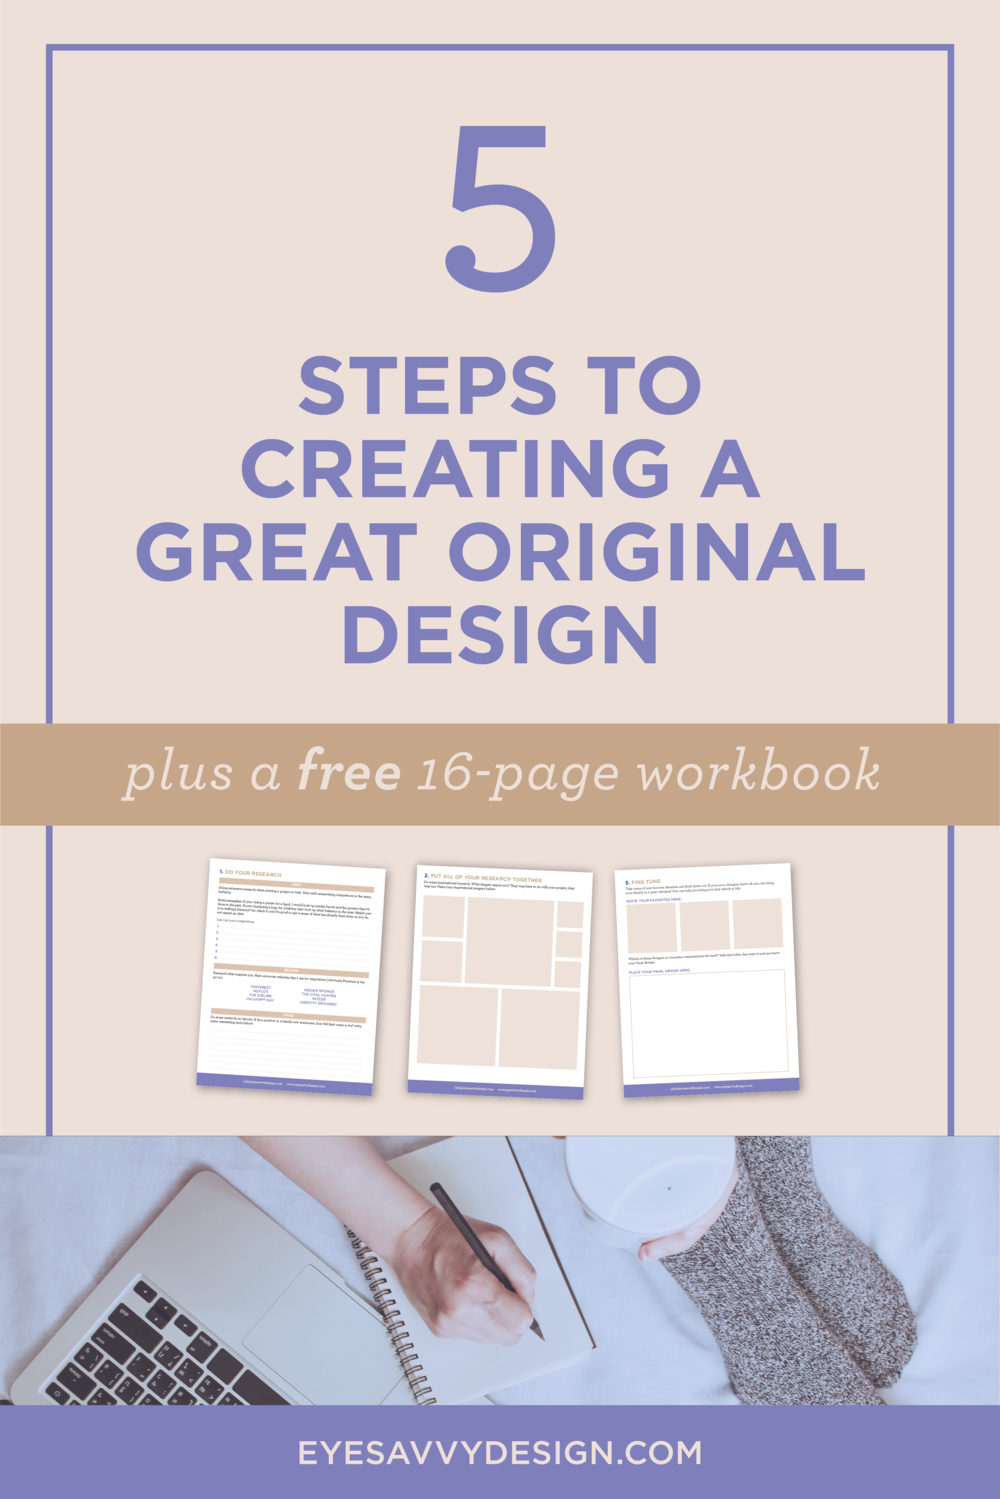 5 STEPS TO CREATING A GREAT ORIGINAL DESIGN | EyeSavvy Design | Kiki Bakowski | Branding, Design, Creative Inspiration, Originality, Free Workbook, Creative Juices, #beoriginal #originalidea #freeworkbook #graphicdesign #inspiration #originalityiskey #originality #originaldesigner  #gooddesign #freelancedesigner #branding #branddesign #branding101